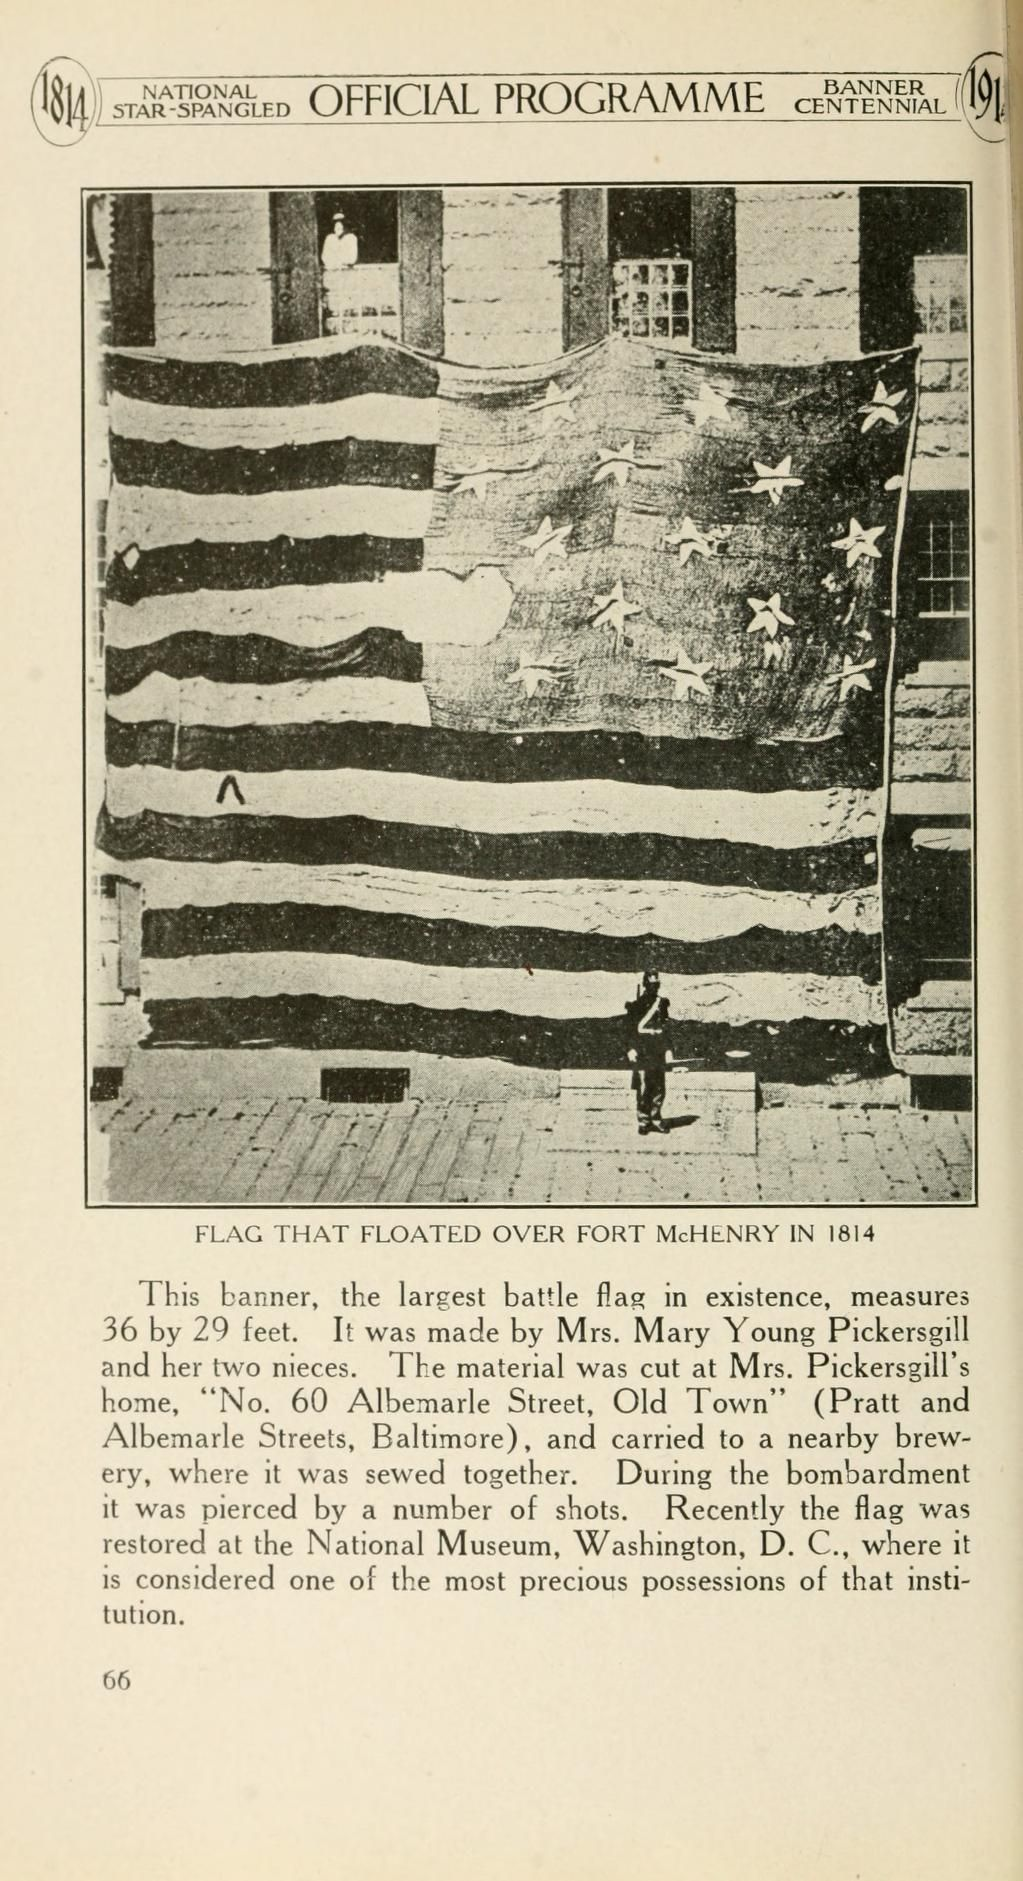 This American Flag Was Flown Over Fort Mchenry In Baltimore Maryland In 1814 The Photograph Was Taken Star Spangled Banner History Pictures Civil War Flags